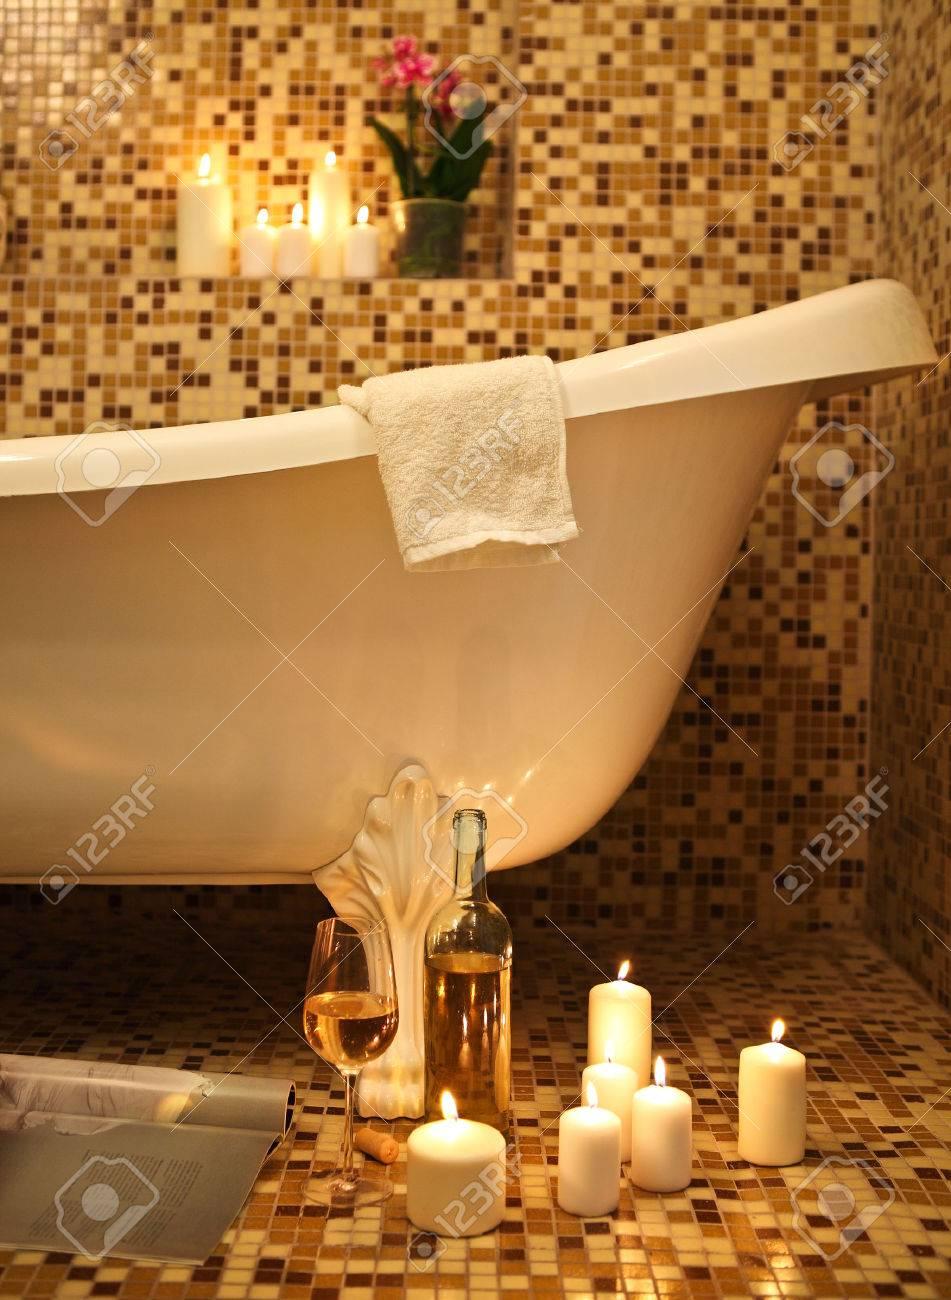 Home Bathroom Interior With Bubble Bath Candles Magazine And - Candles for bathroom